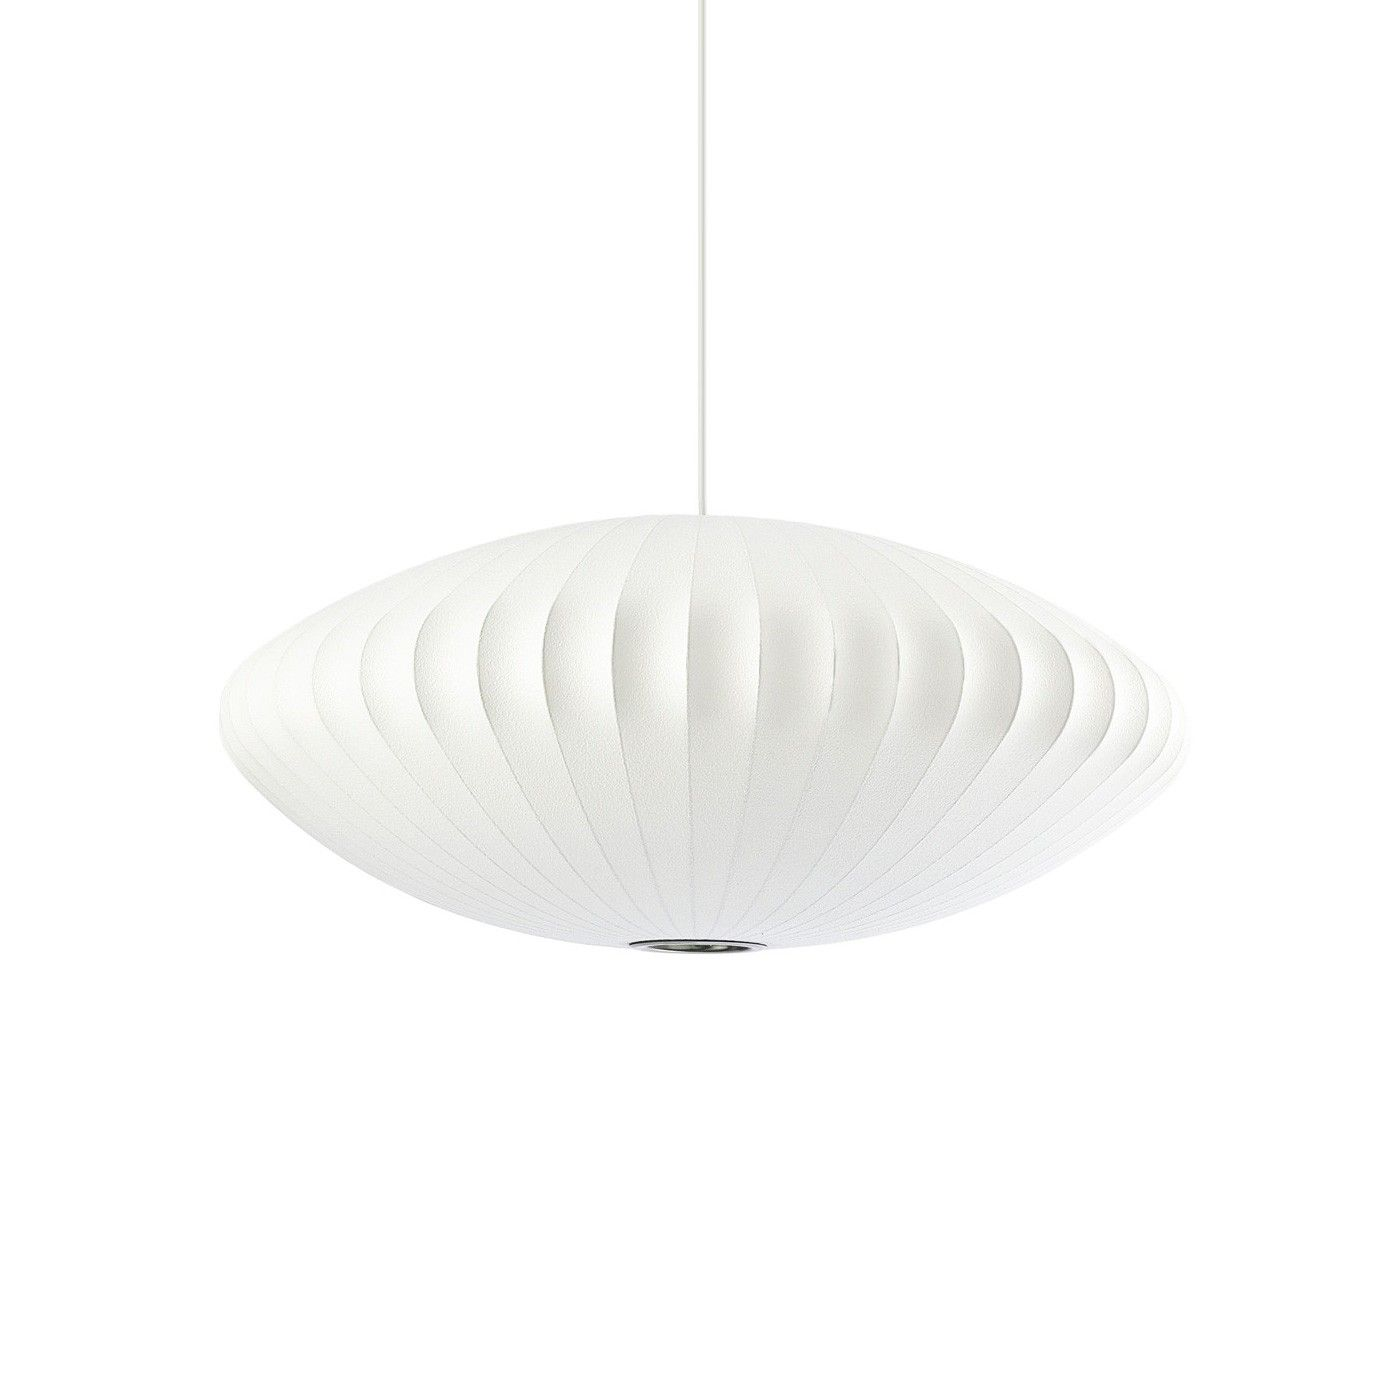 The Saucer hanging lamp was designed by George Nelson in 1947 as an innovative alternative to pendant lighting. Part of the permanent collection of the Museum of Modern Art in New York, this elegant mid-century pendant has stood the test the time,  with a translucent shell wrapped around a modern wire frame.